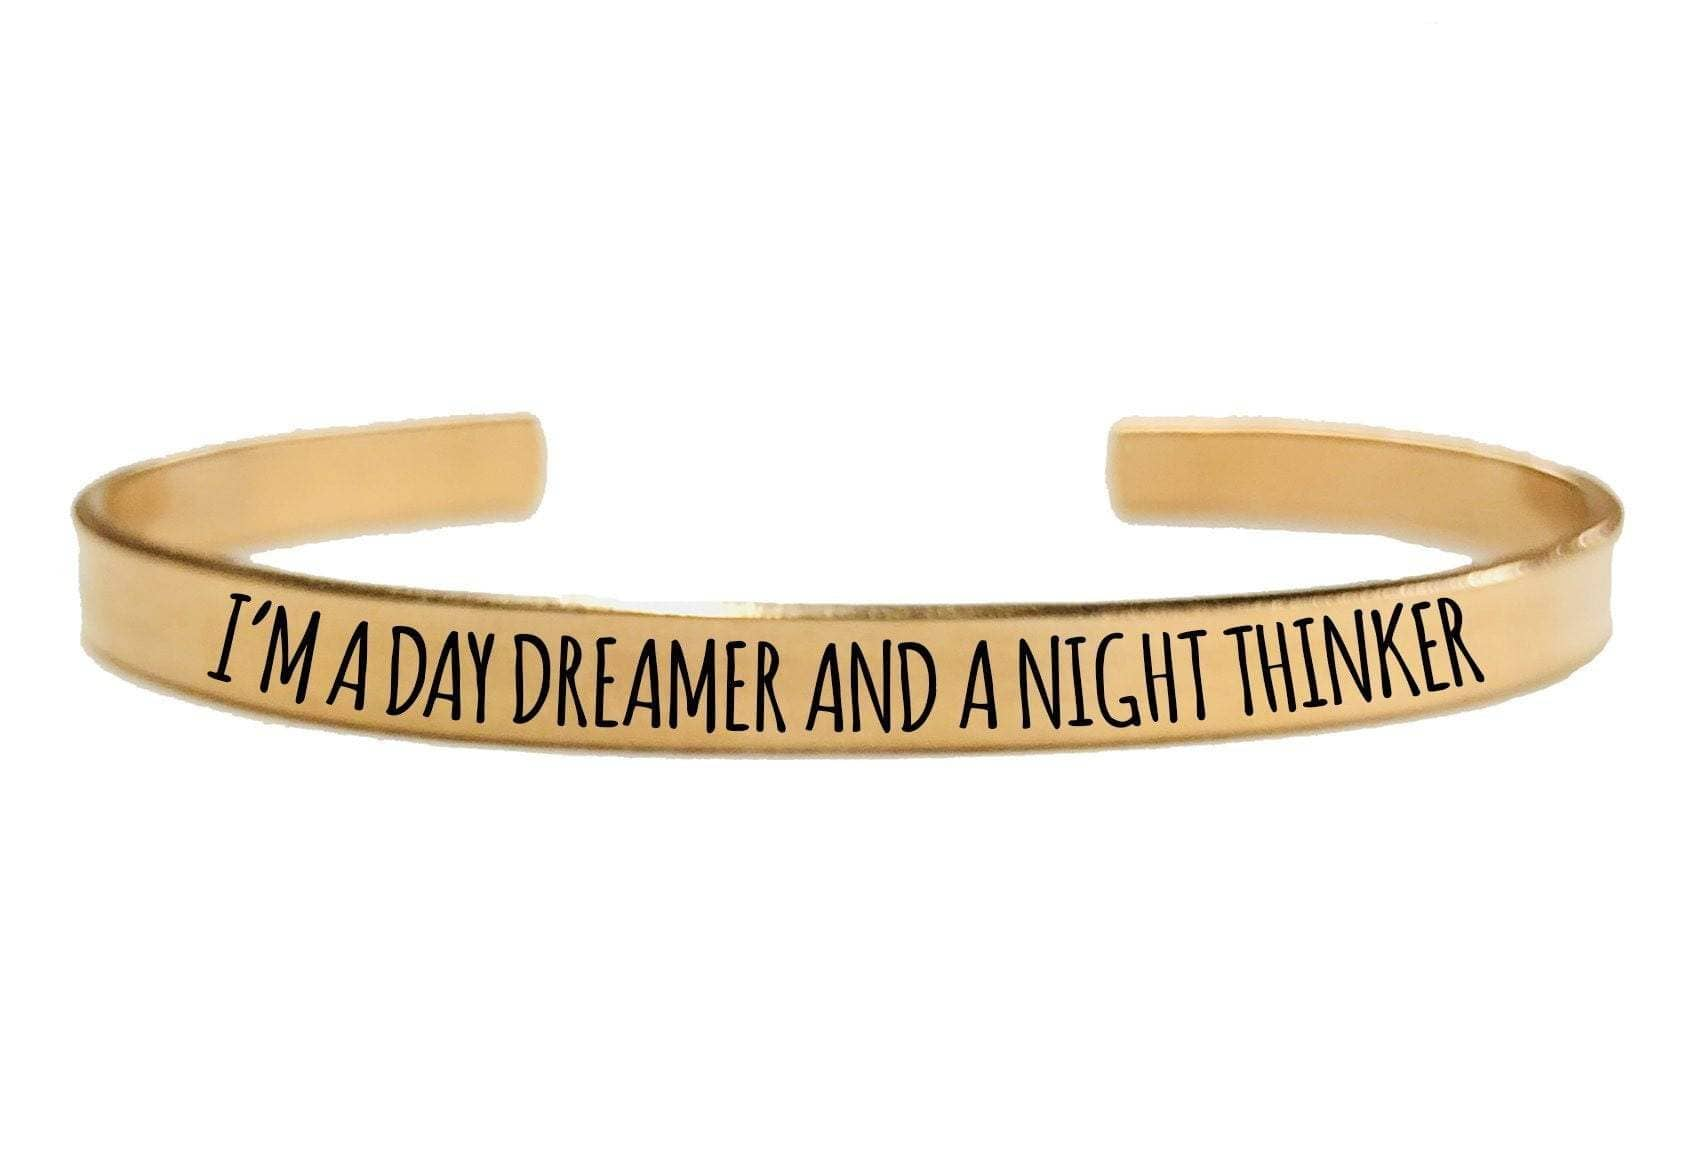 I'M A DAY DREAMER AND A NIGHT THINKER CUFF BRACELET